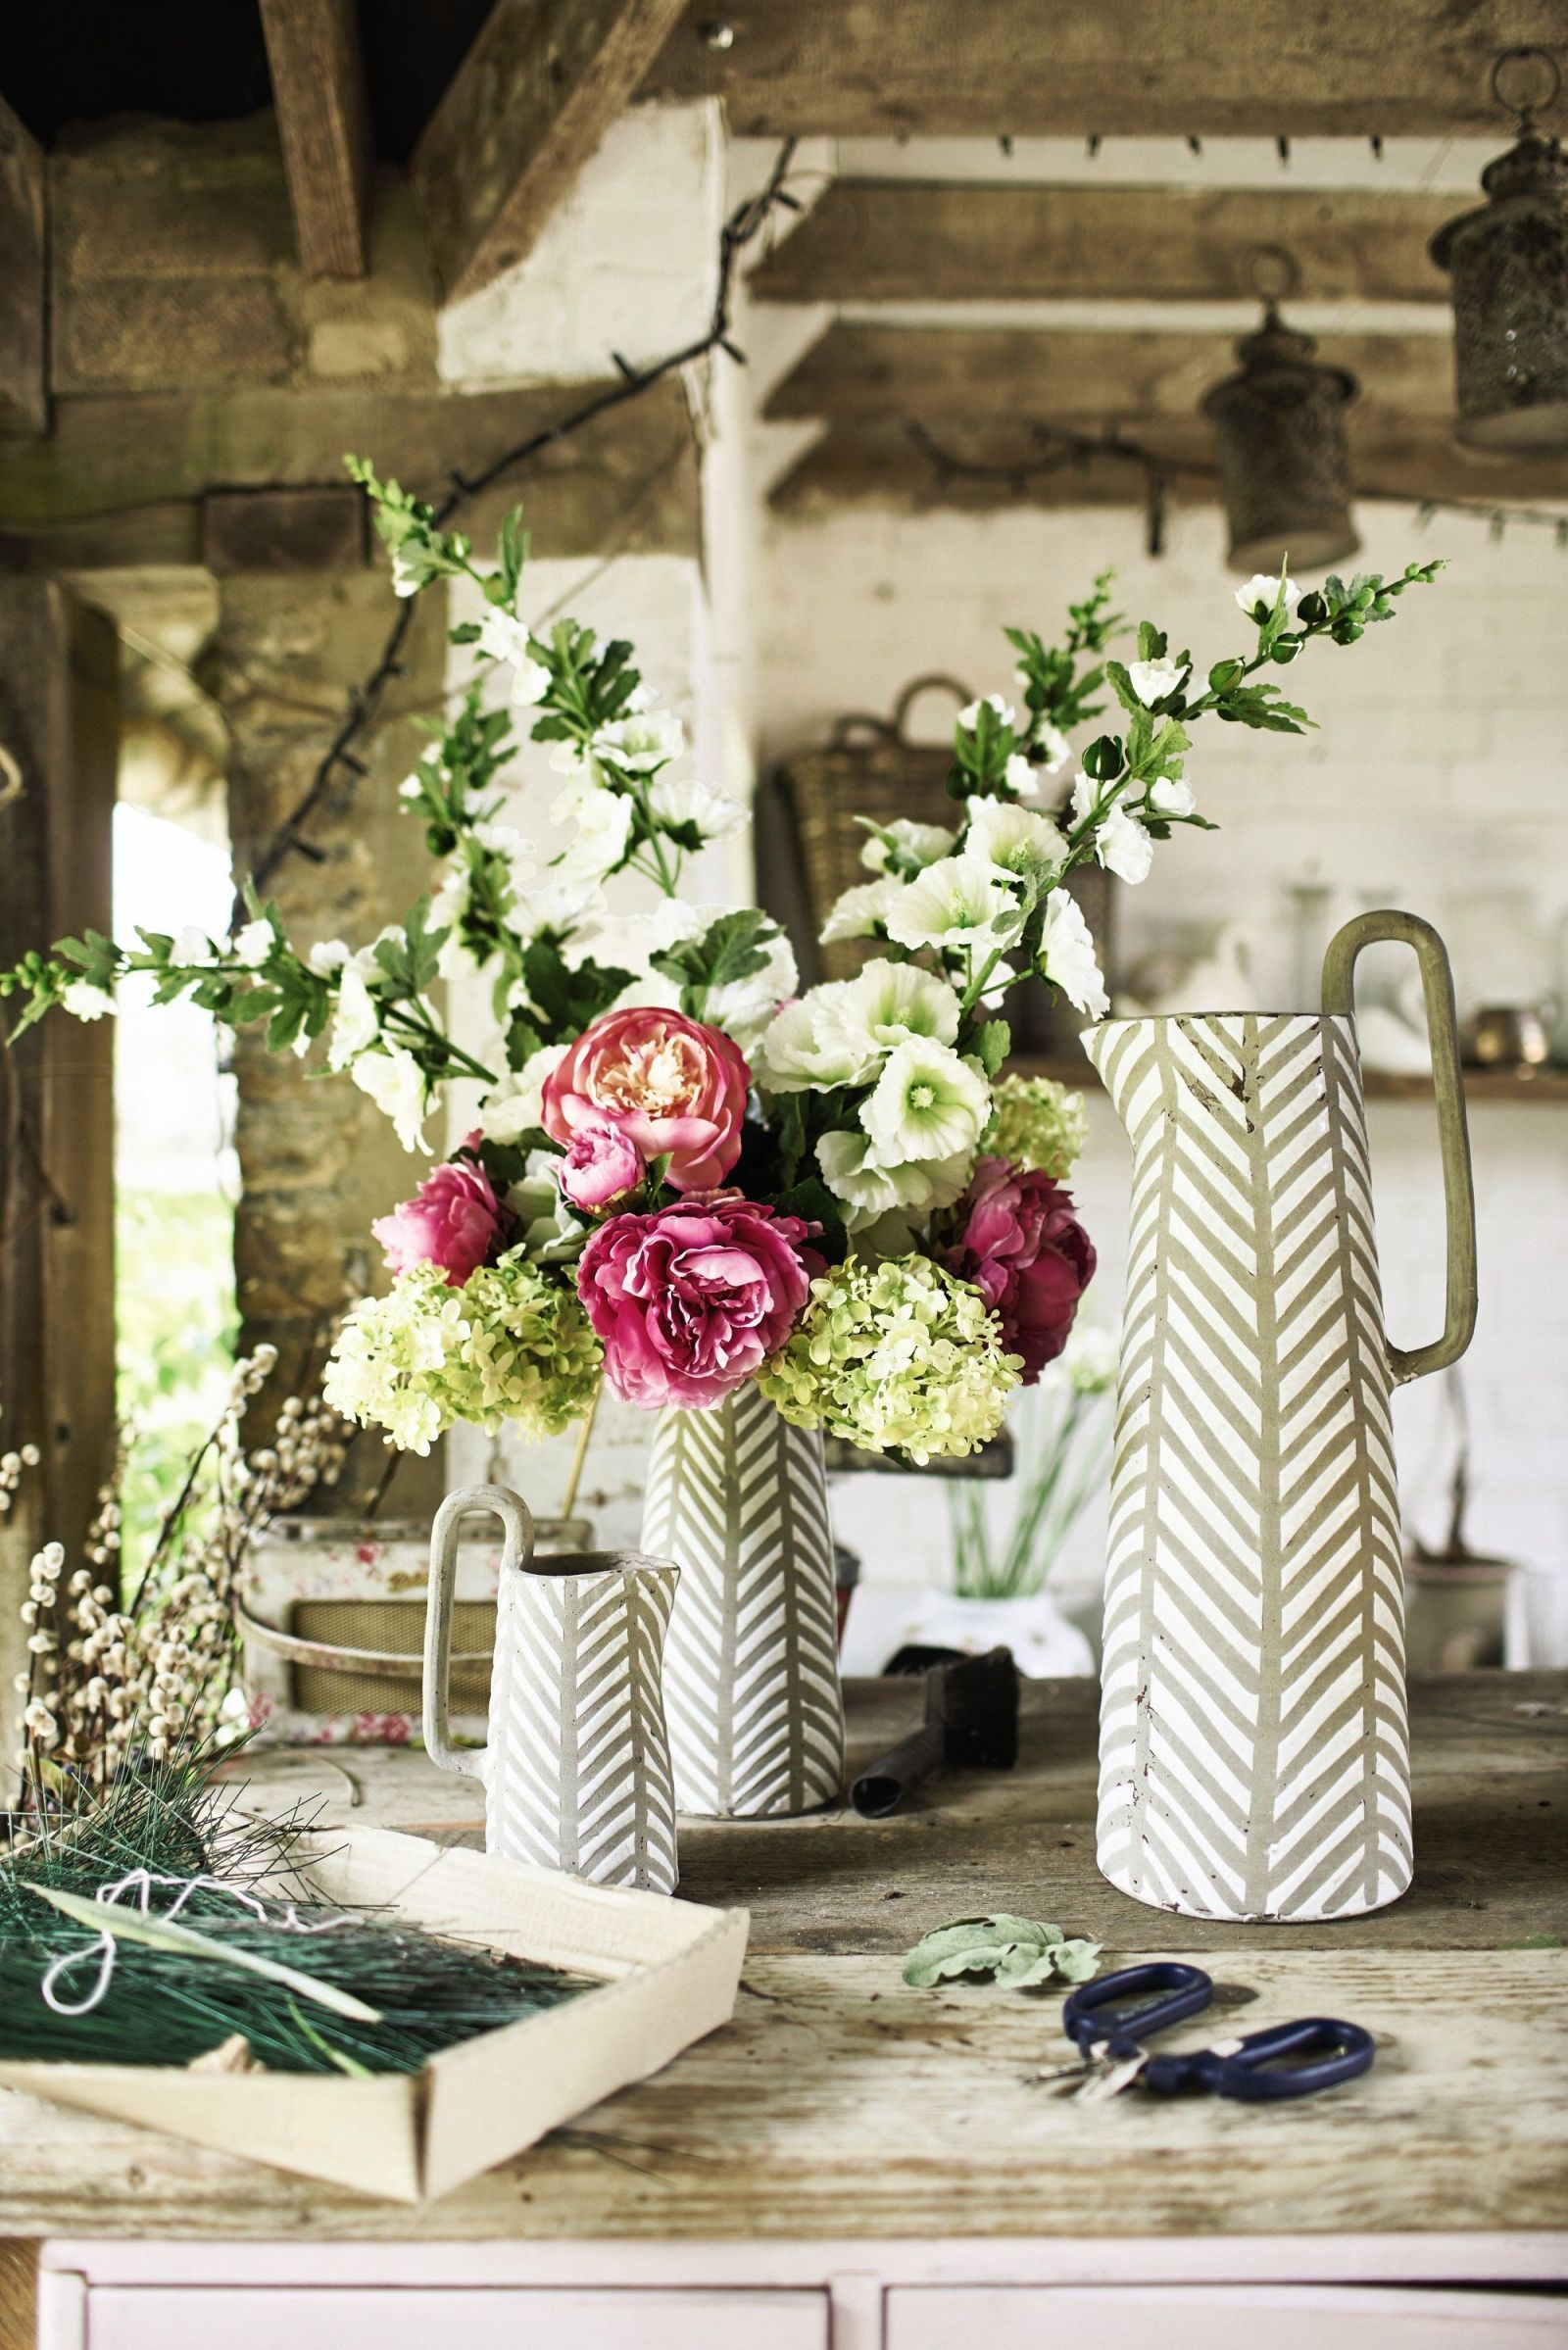 Faux flowers - Oxberry Hollyhock Willow Crossley for OKA & How to style artificial flowers and plants at home